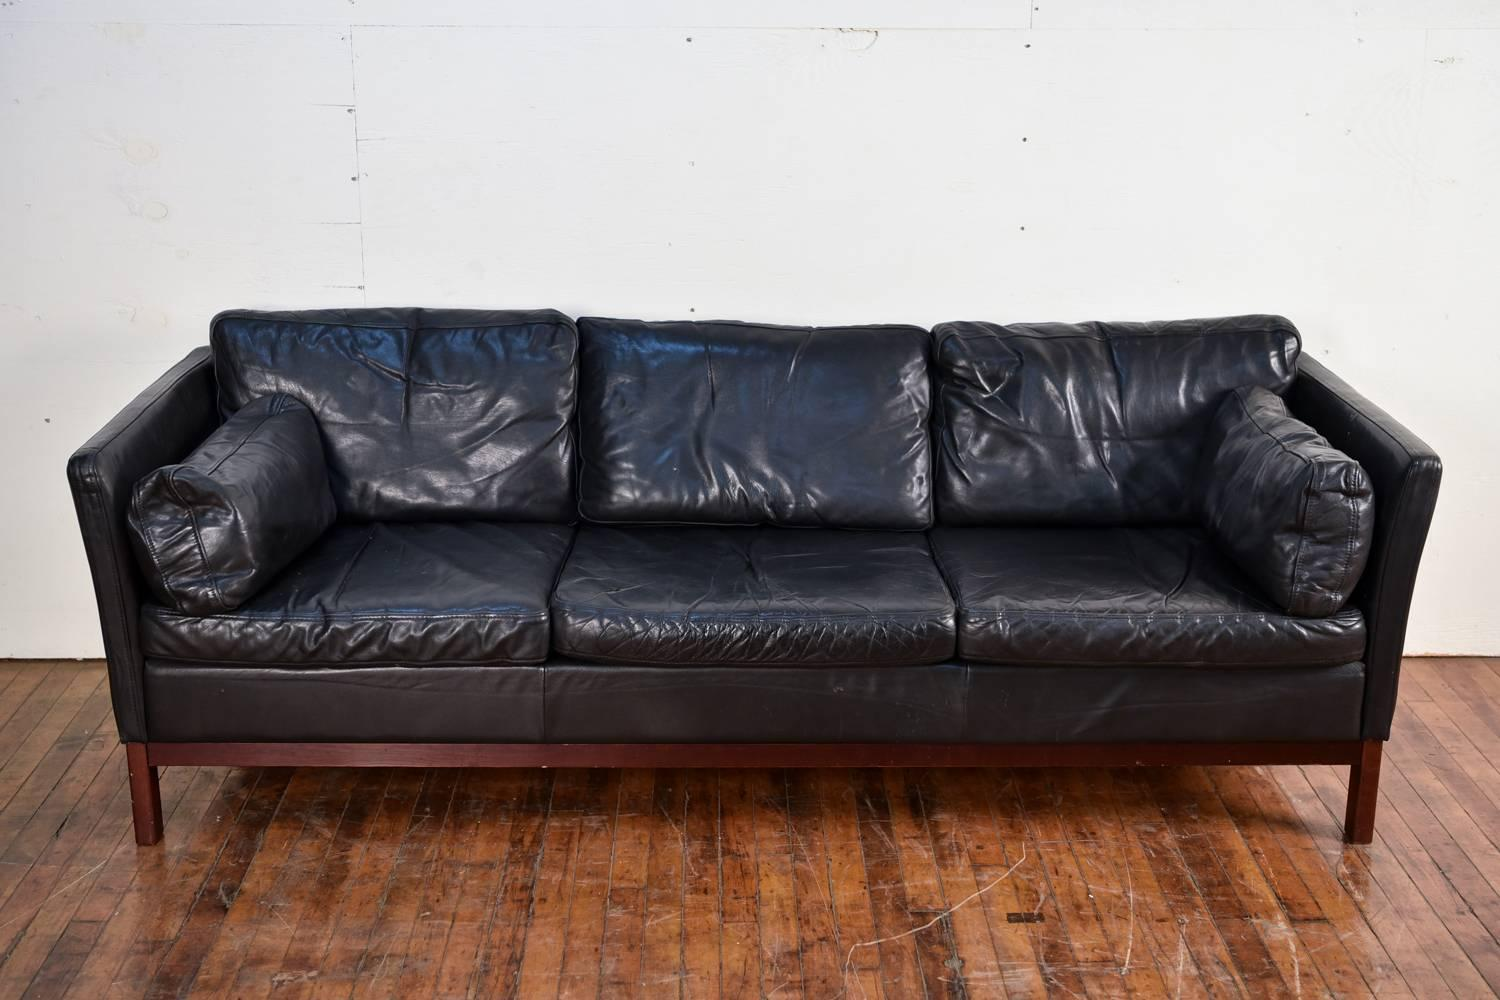 This Danish Midcentury Three Seat Sofa Was Designed By Mogens Hansen In The  1960s And